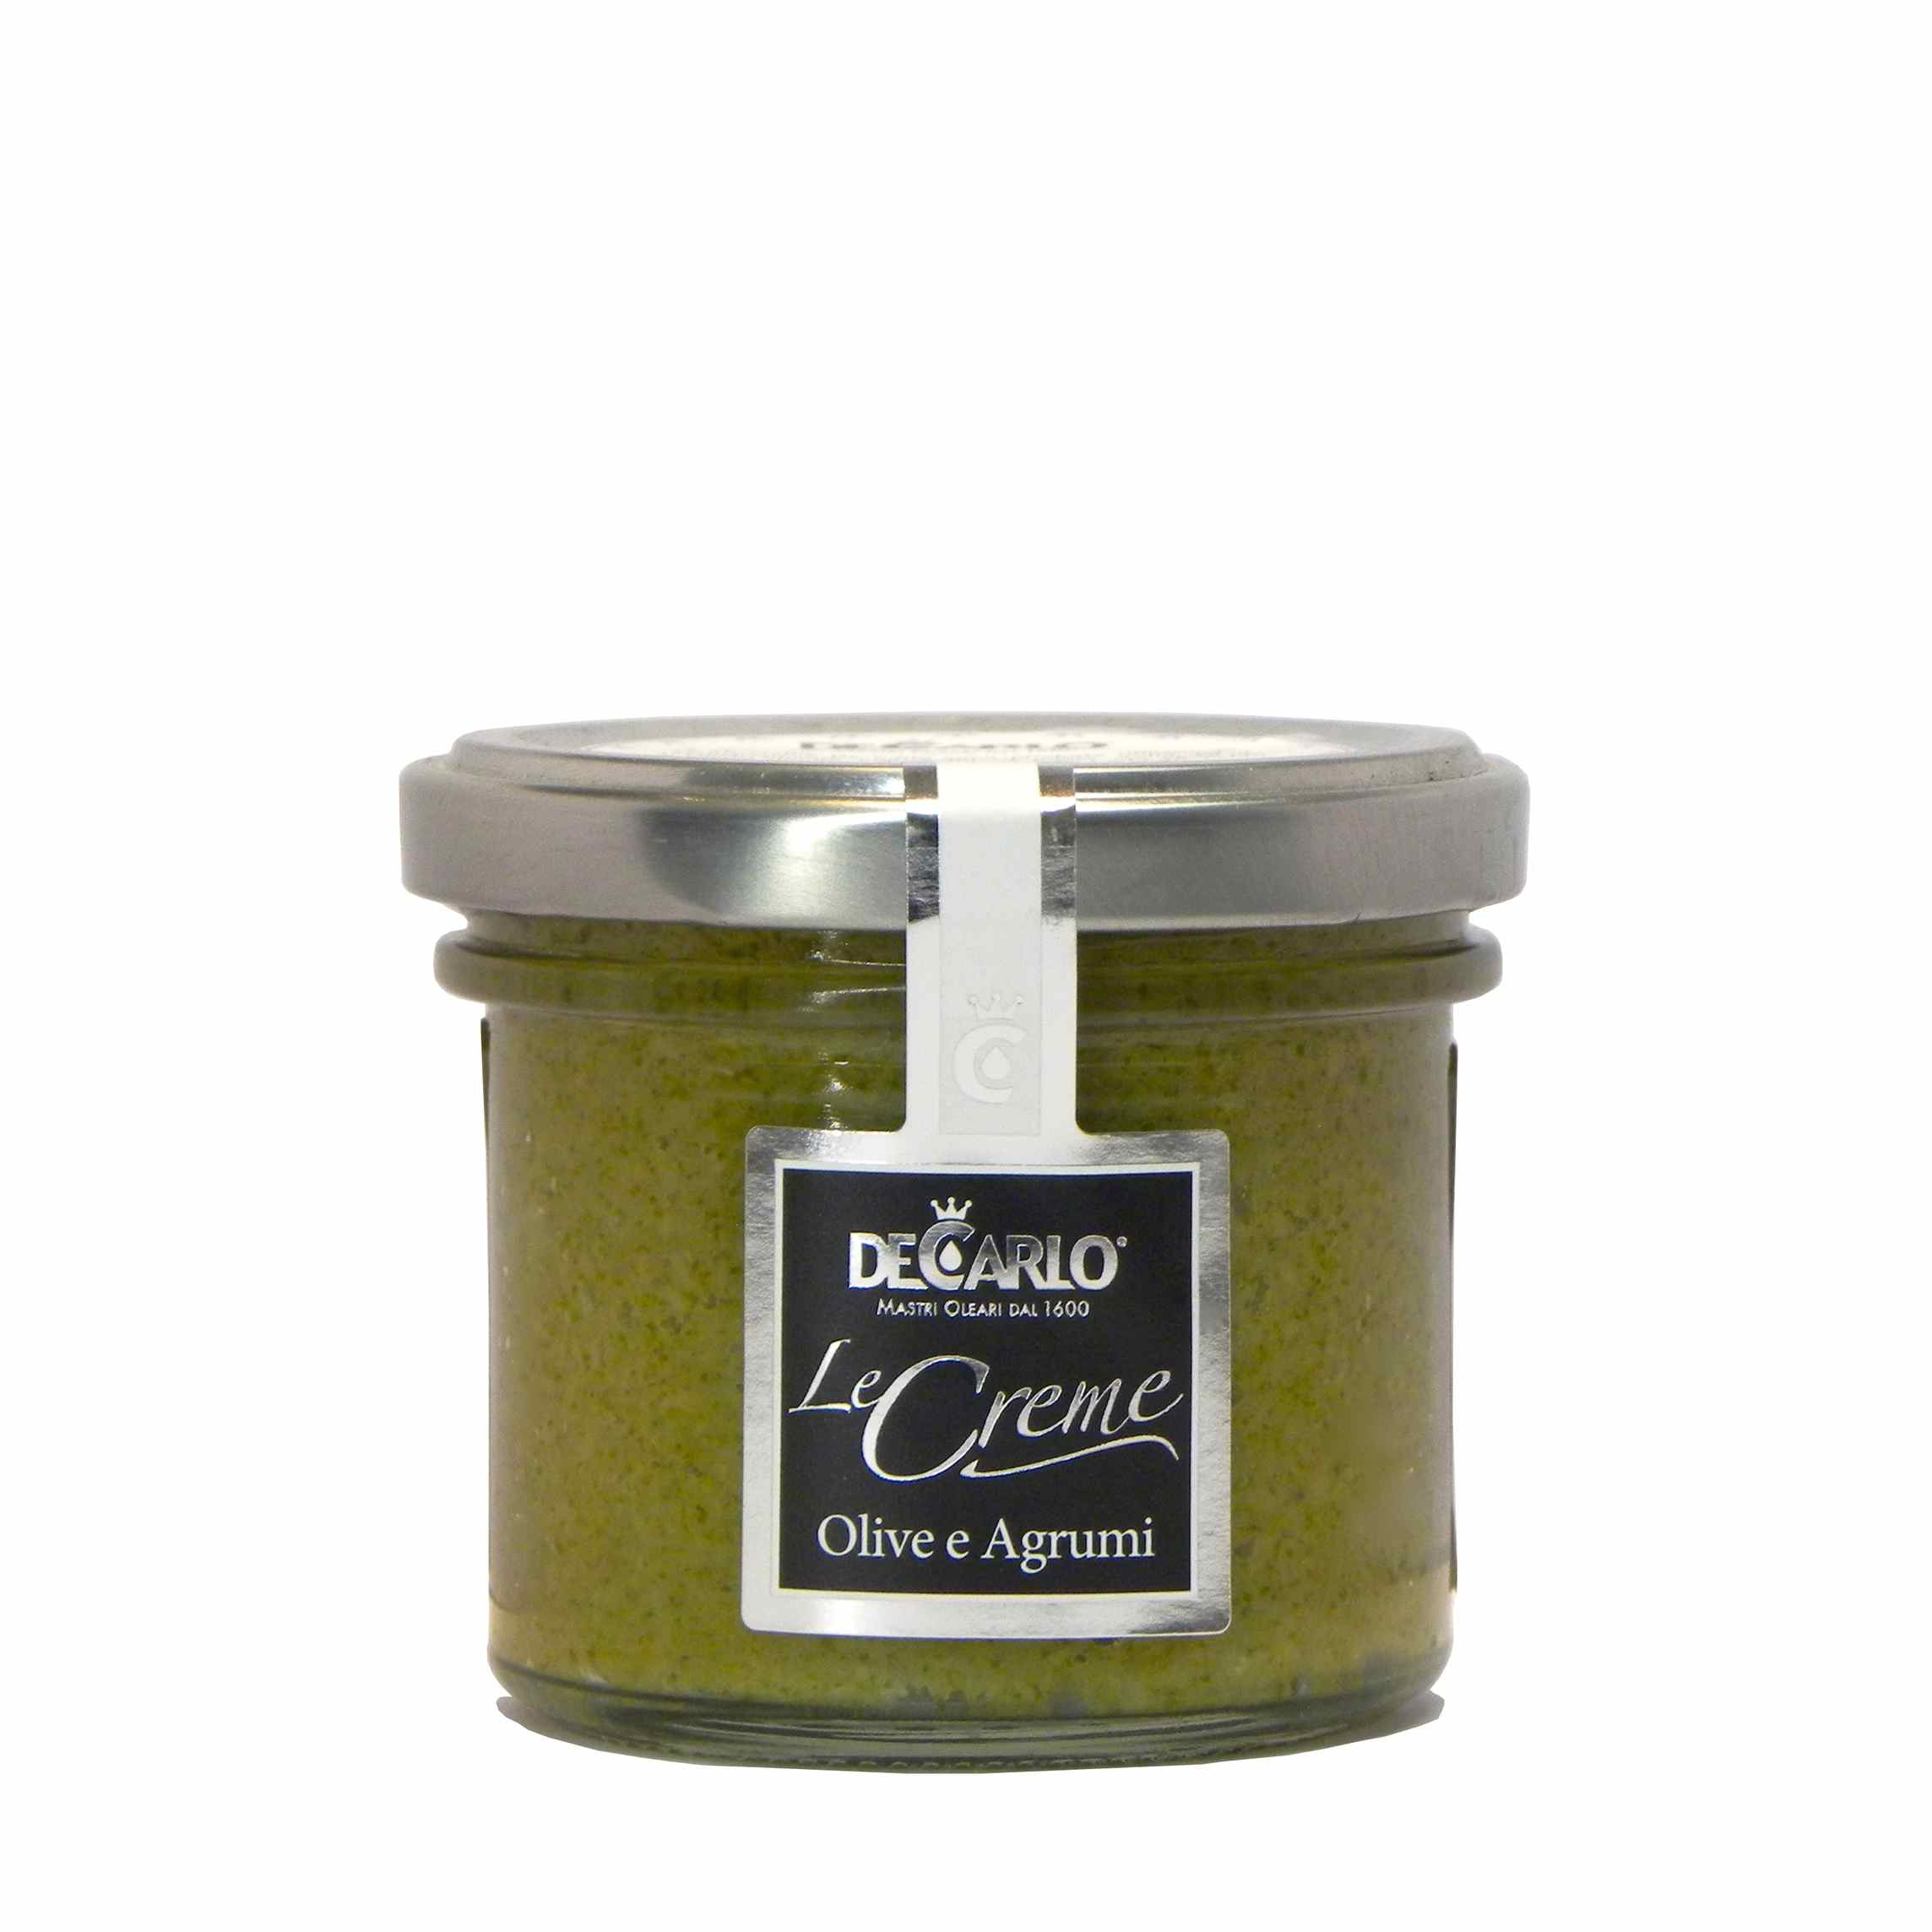 De Carlo olive verdi agrumi – De Carlo green olives citrus fruits bruschetta – Gustorotondo – Italian food boutique